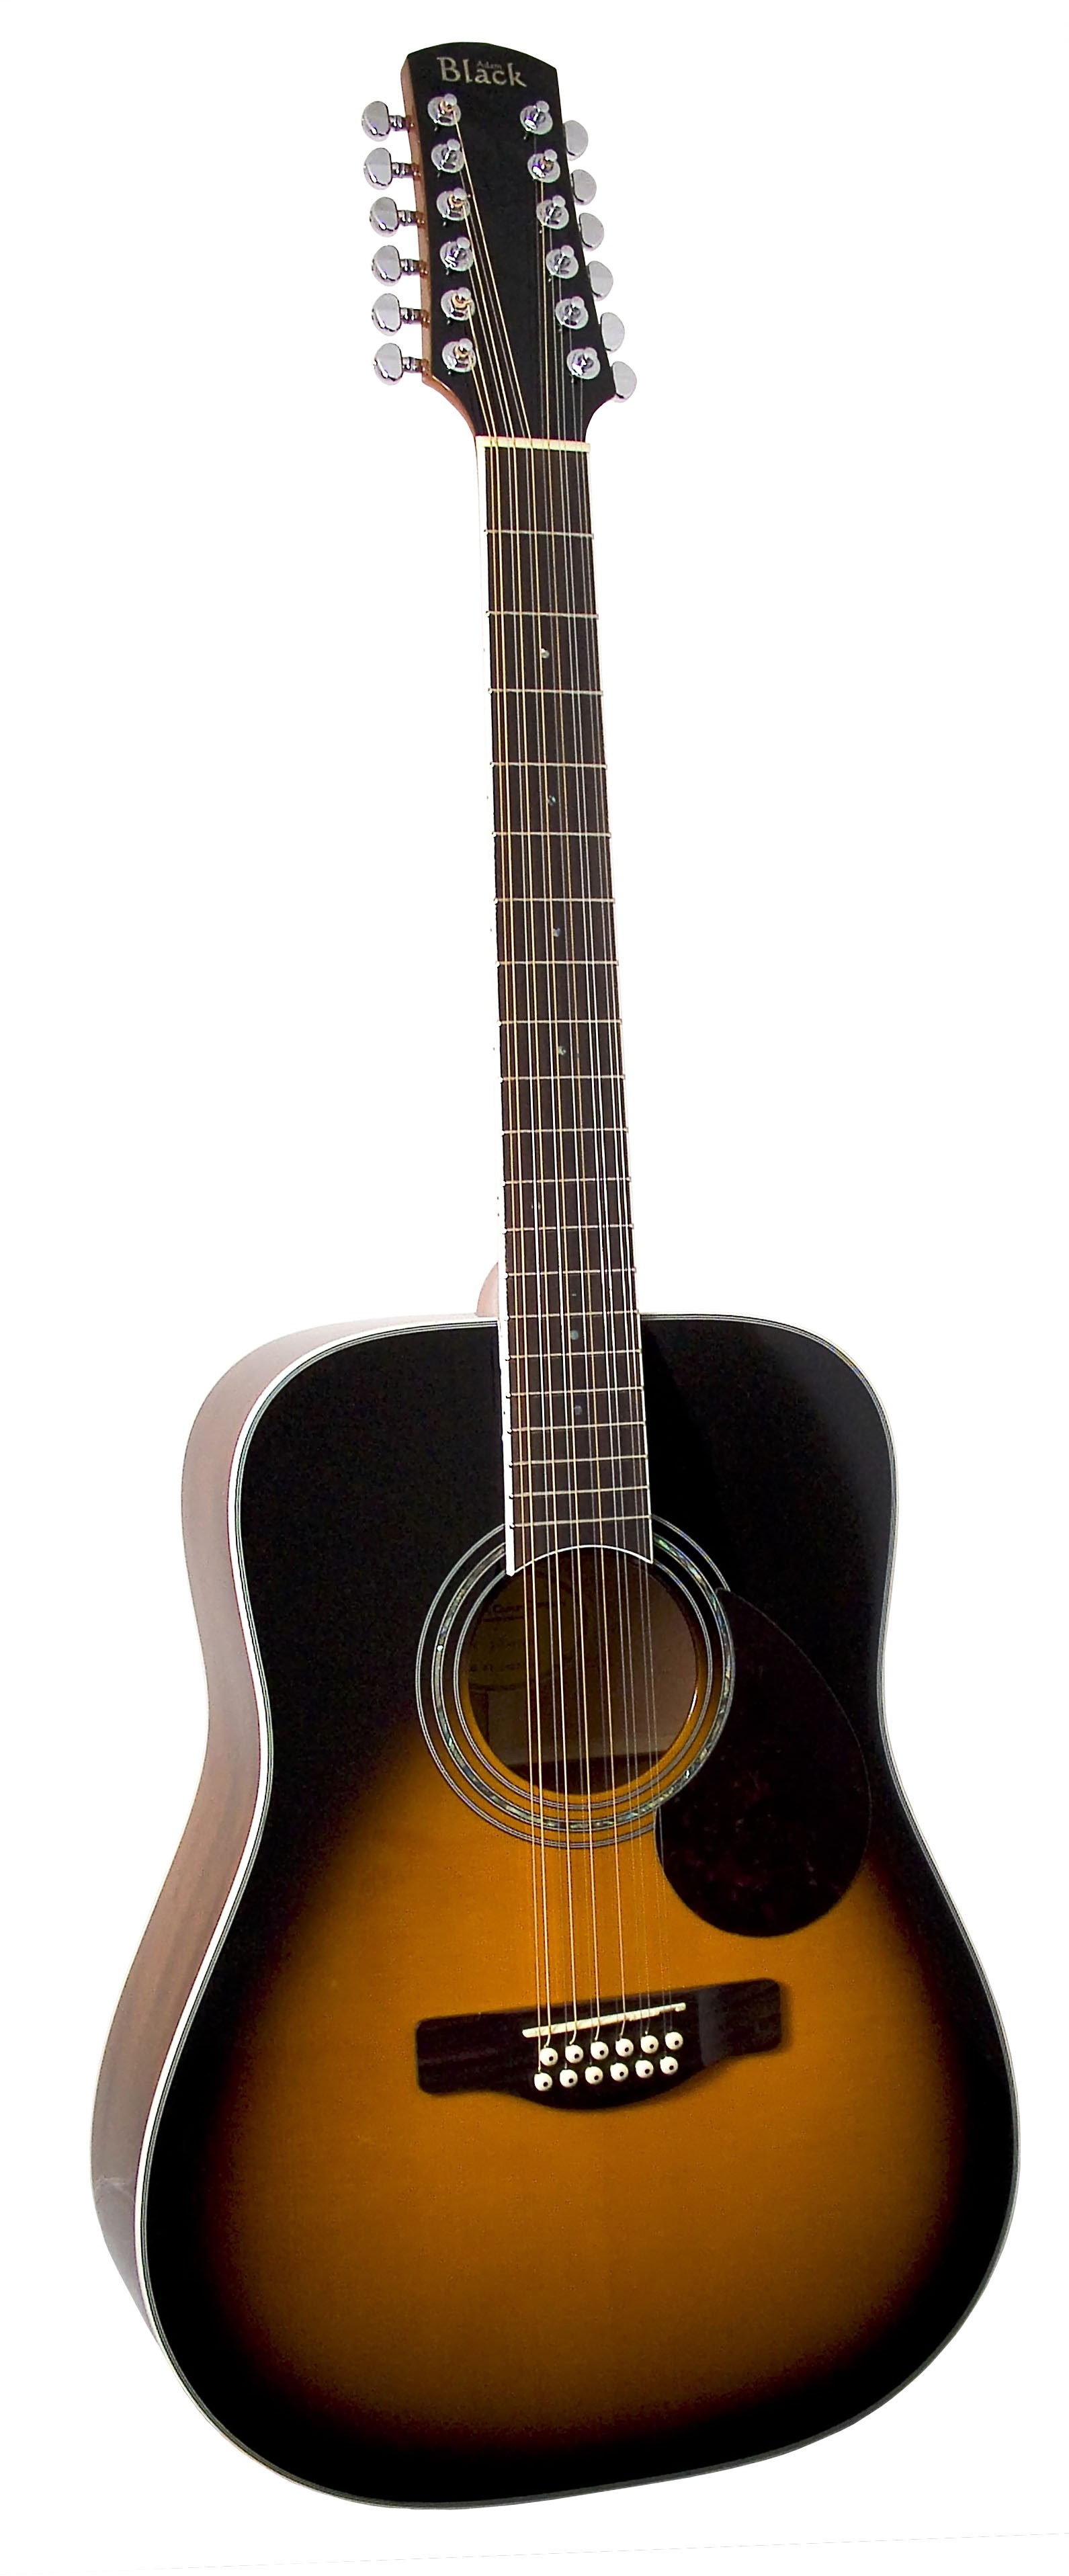 Adam Black S-5/12 12 String - Vintage Sunburst